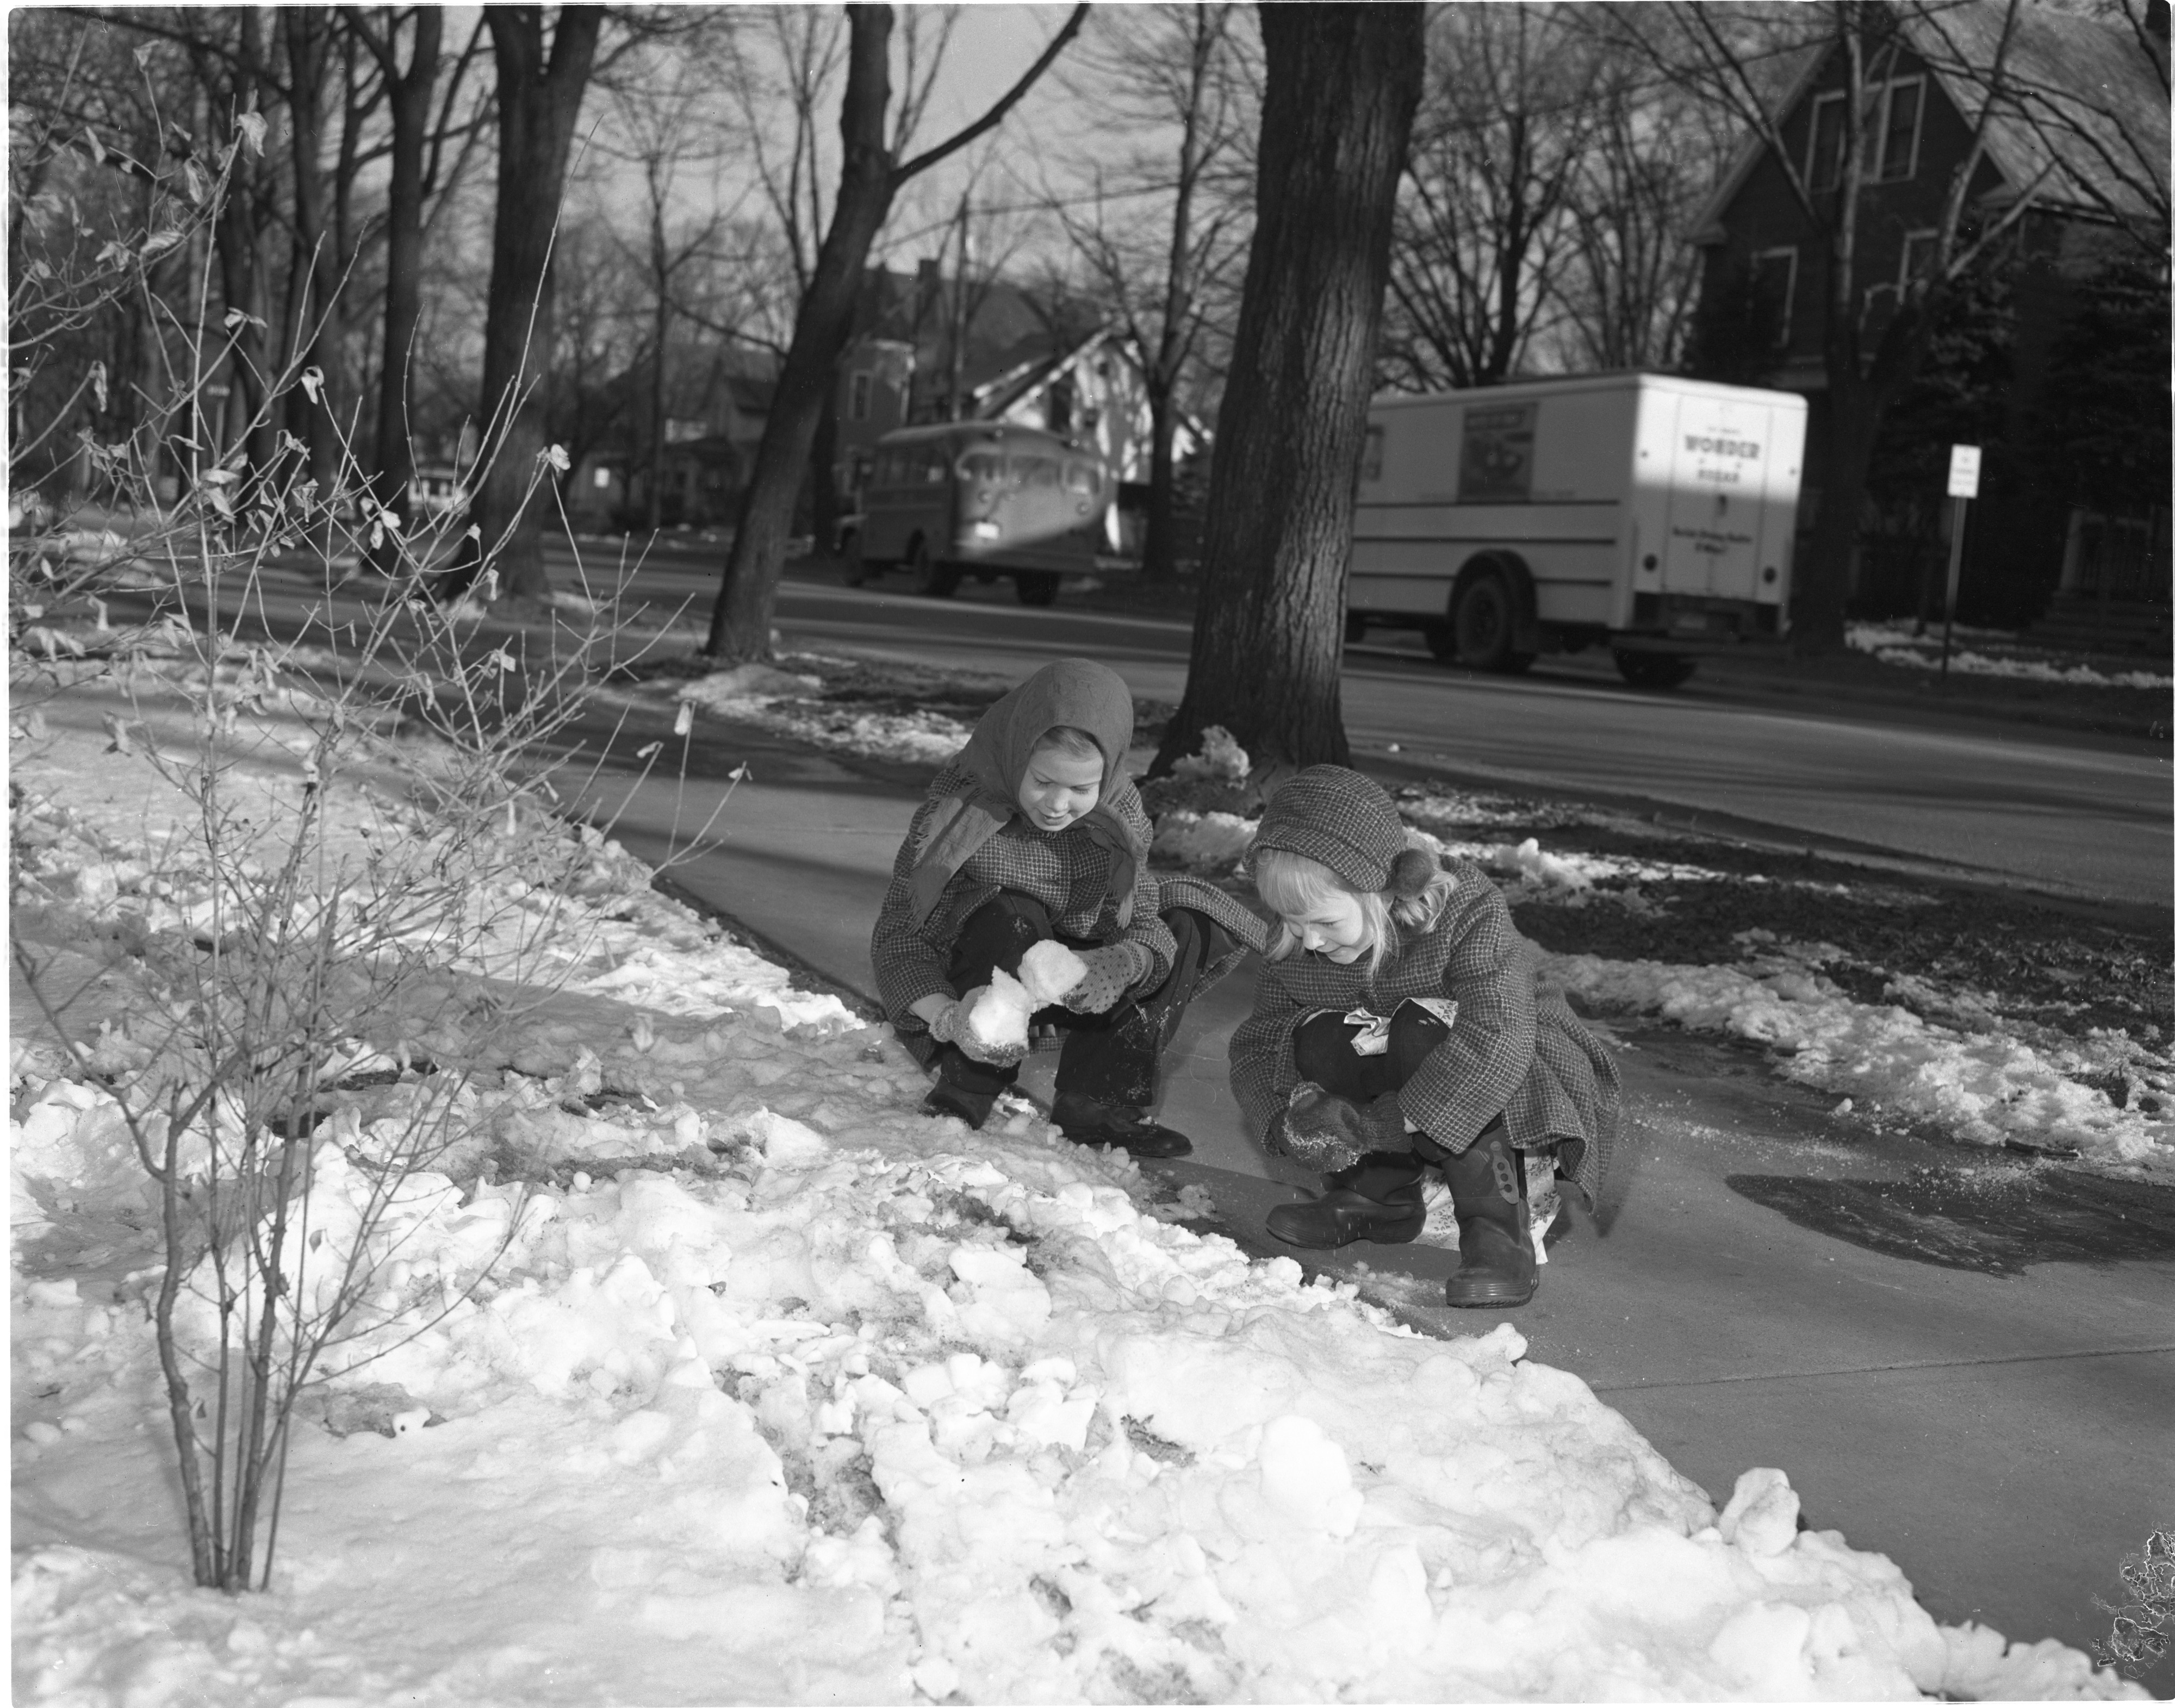 Robin & Christine Bailey Pack Snowballs On The First Day Of Spring, March 1956 image